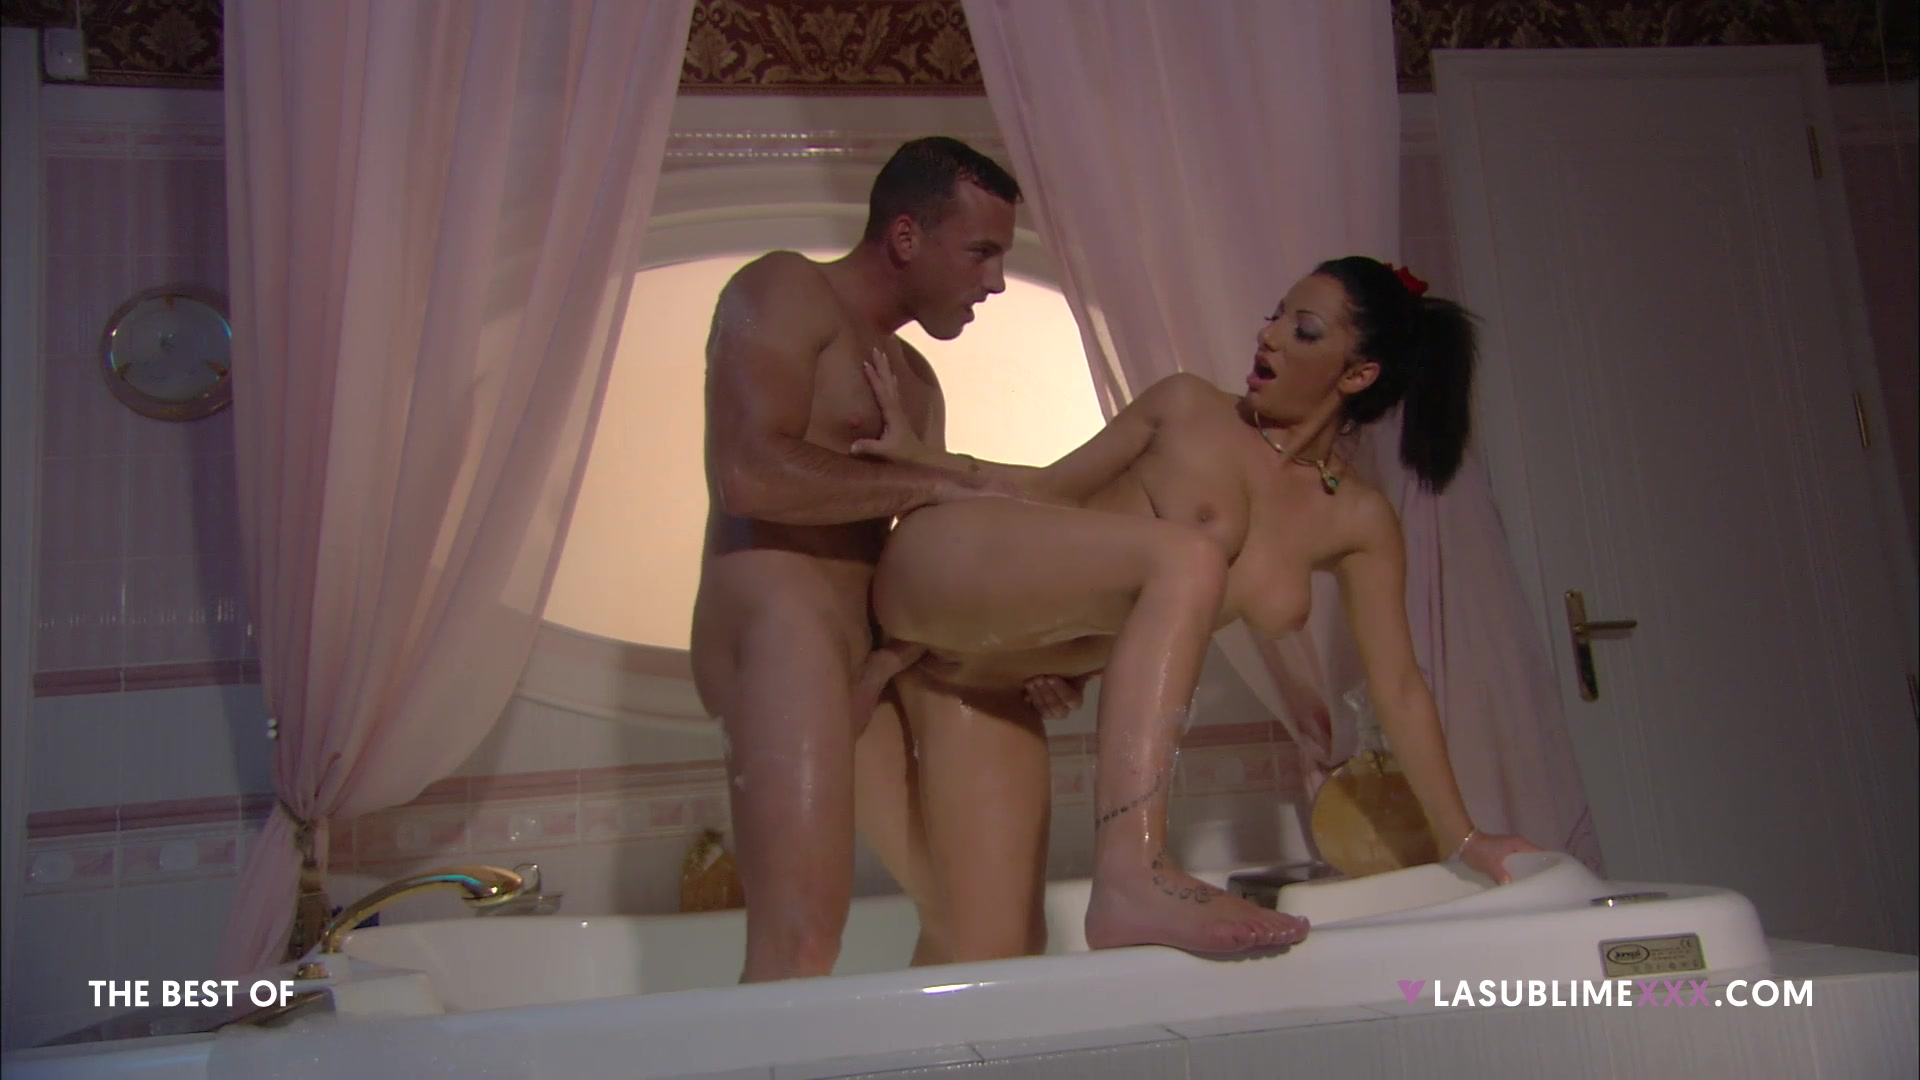 Man's powerful cock leads the busty woman to insane orgasms